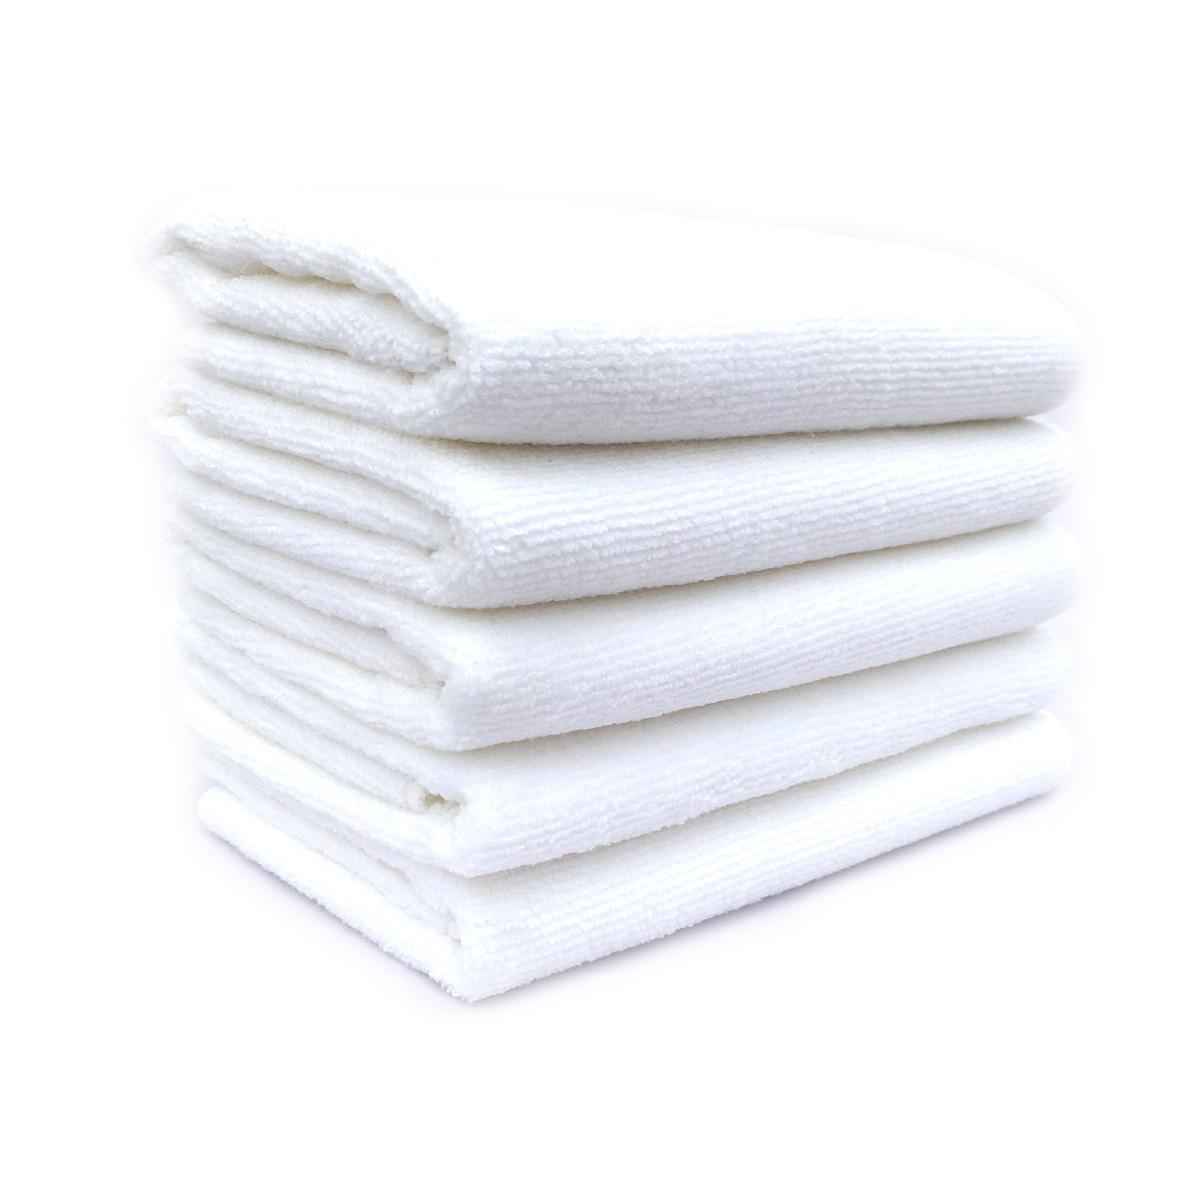 Towels Multi-purpose Microfiber Soft Fast Drying Travel Gym Home Office Washcloths 5-pack(13 x 28 Inch) (White)